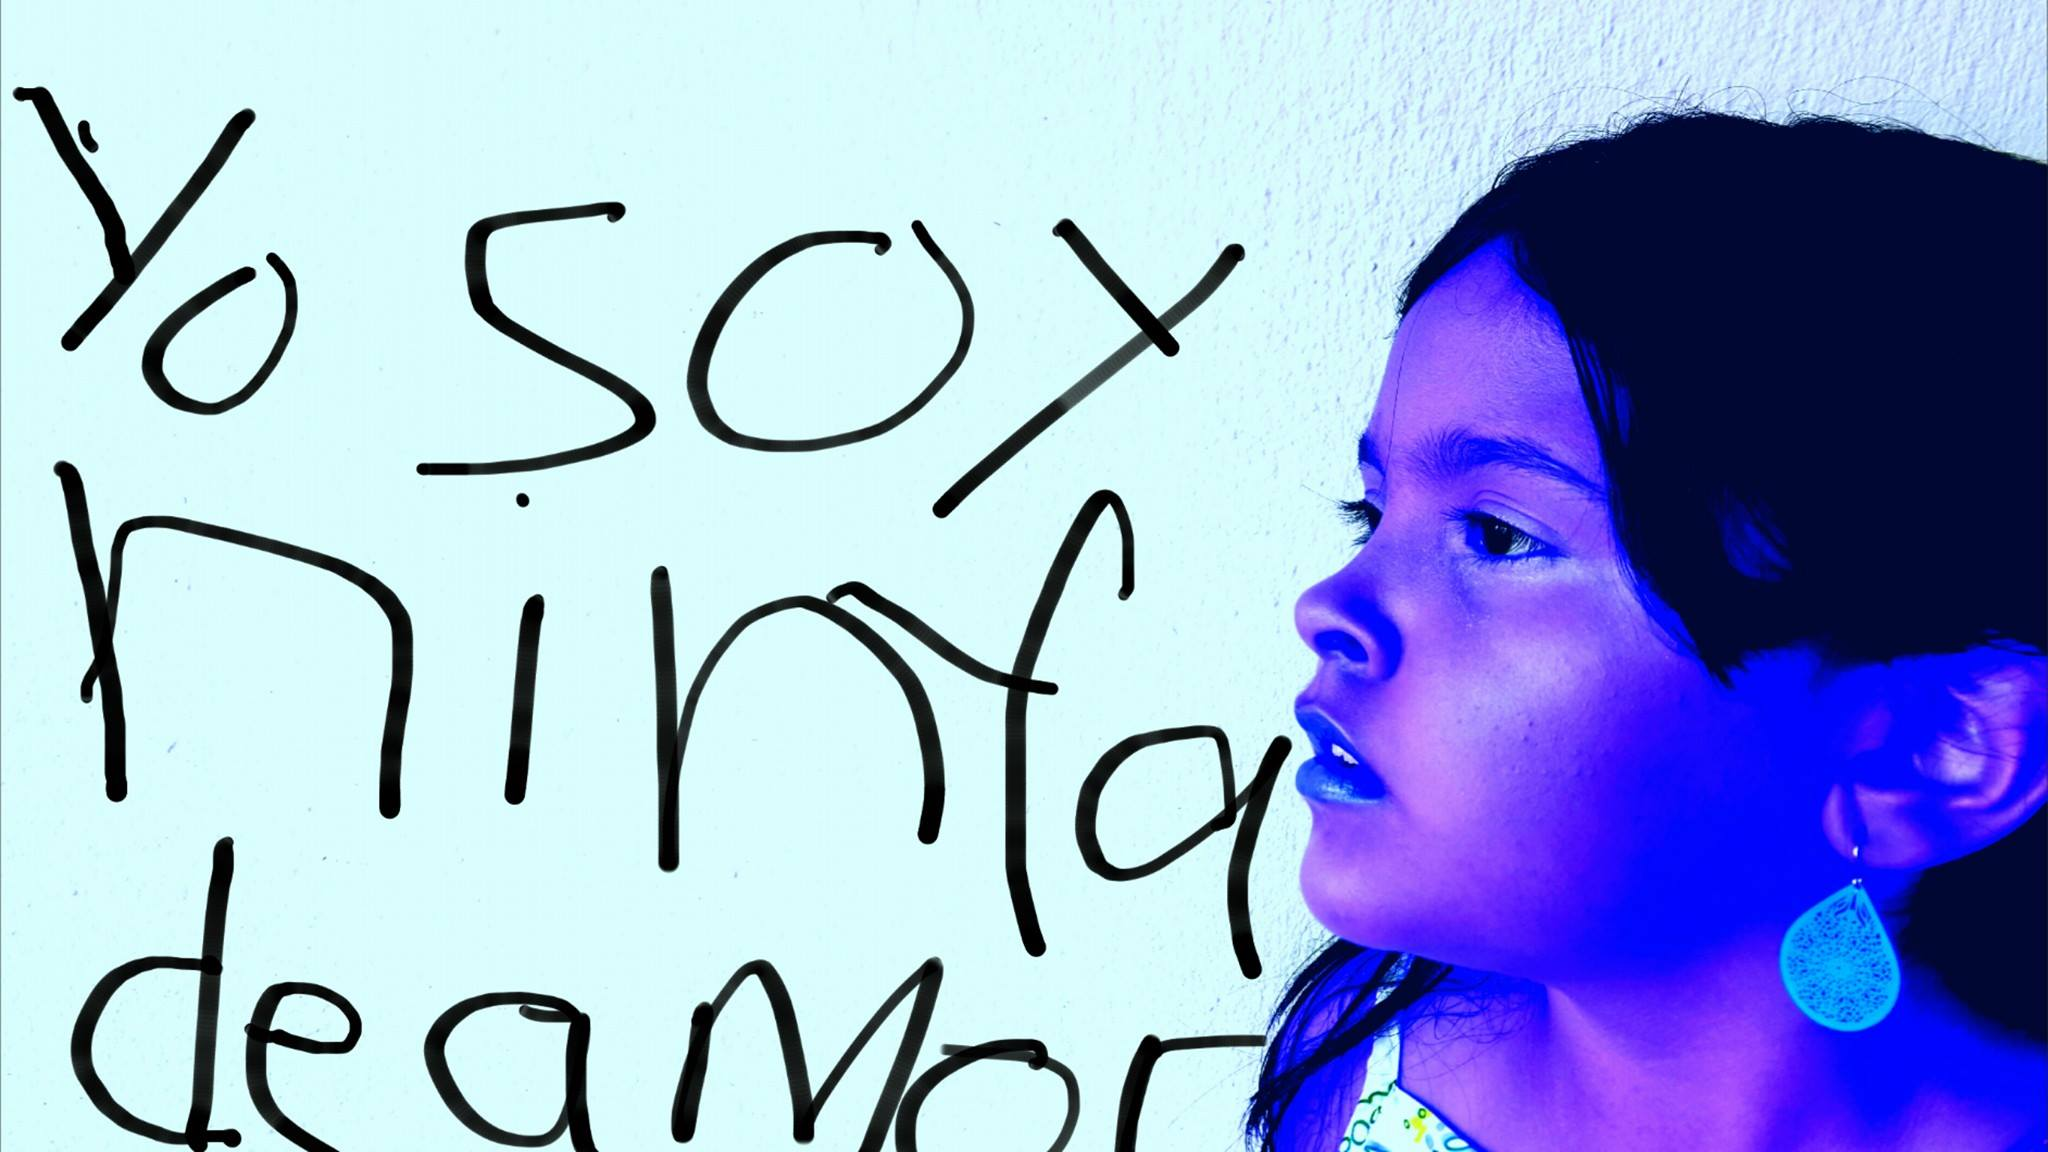 This 8 Year-Old Puerto Rican Prodigy is Writing Poetry About Freedom, Afro-Latinidad and Oscar López Rivera